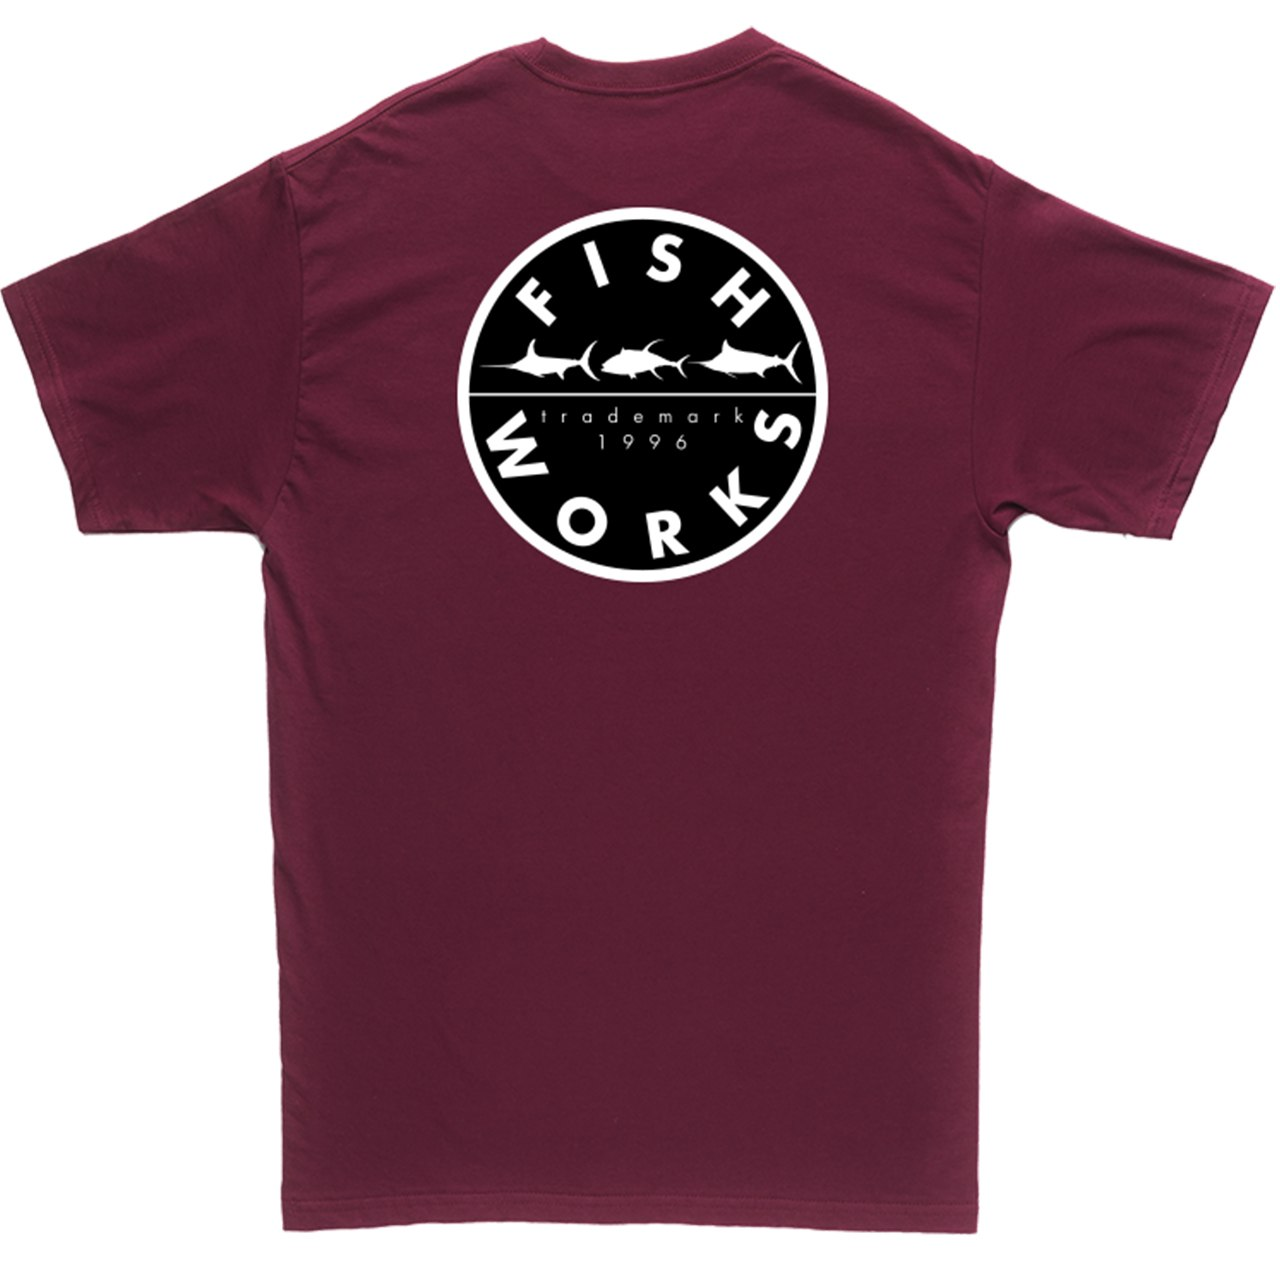 Original Tee Maroon Back